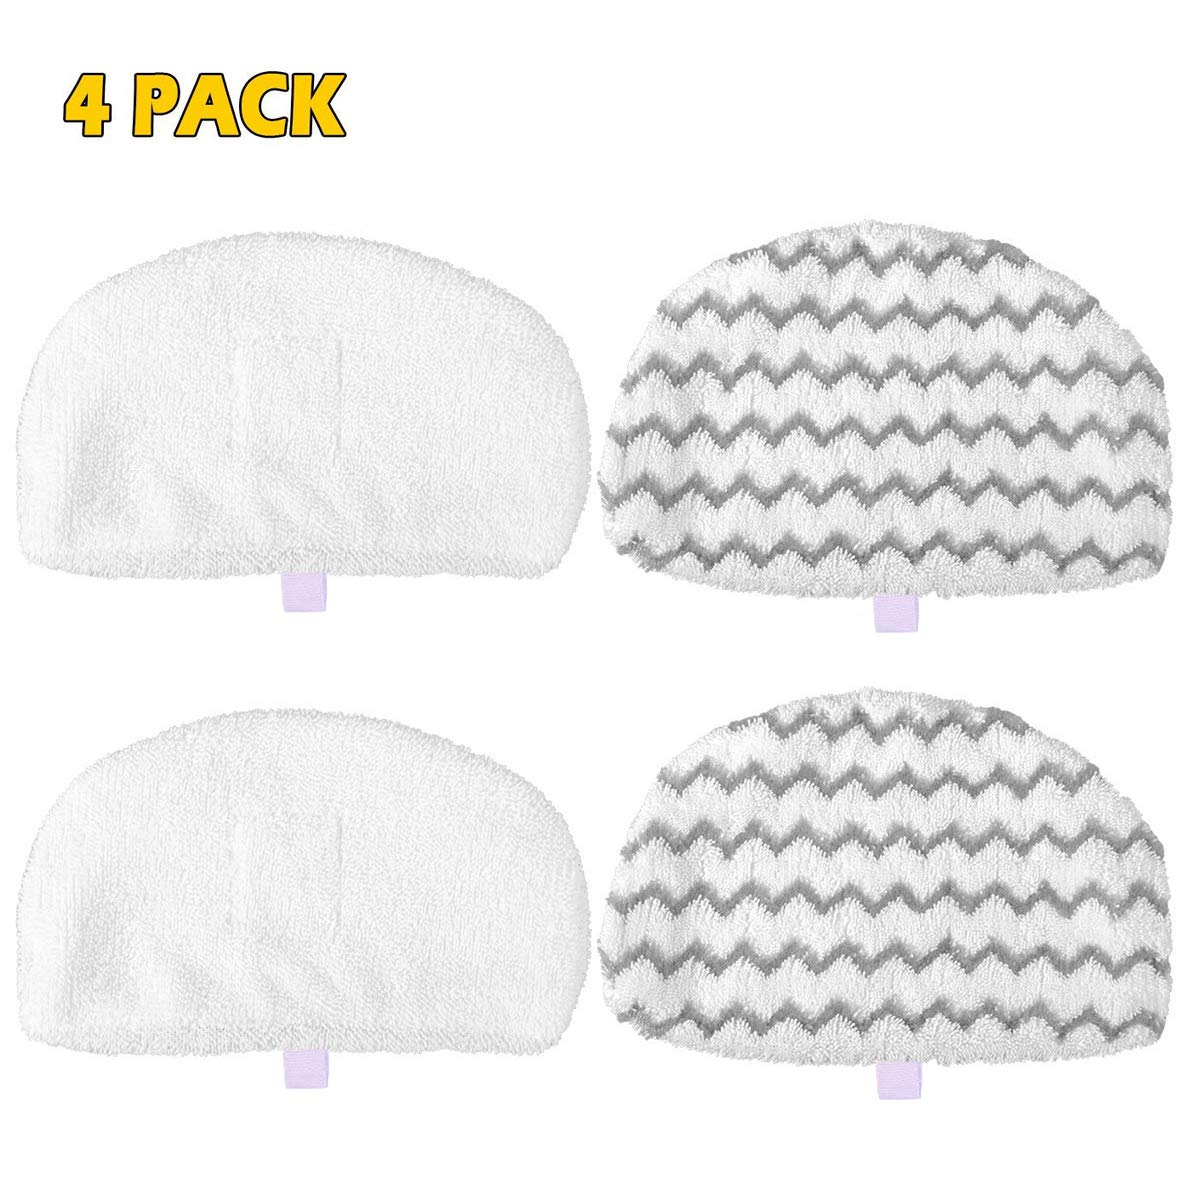 19404 1806 1940W MarlaMall 4 Pack Washable Steam Mop Pads Replacement for Bissell Powerfresh 1940 Series 1544A 1440 5938 19408 1940A 1940Q 1940-002 2075A